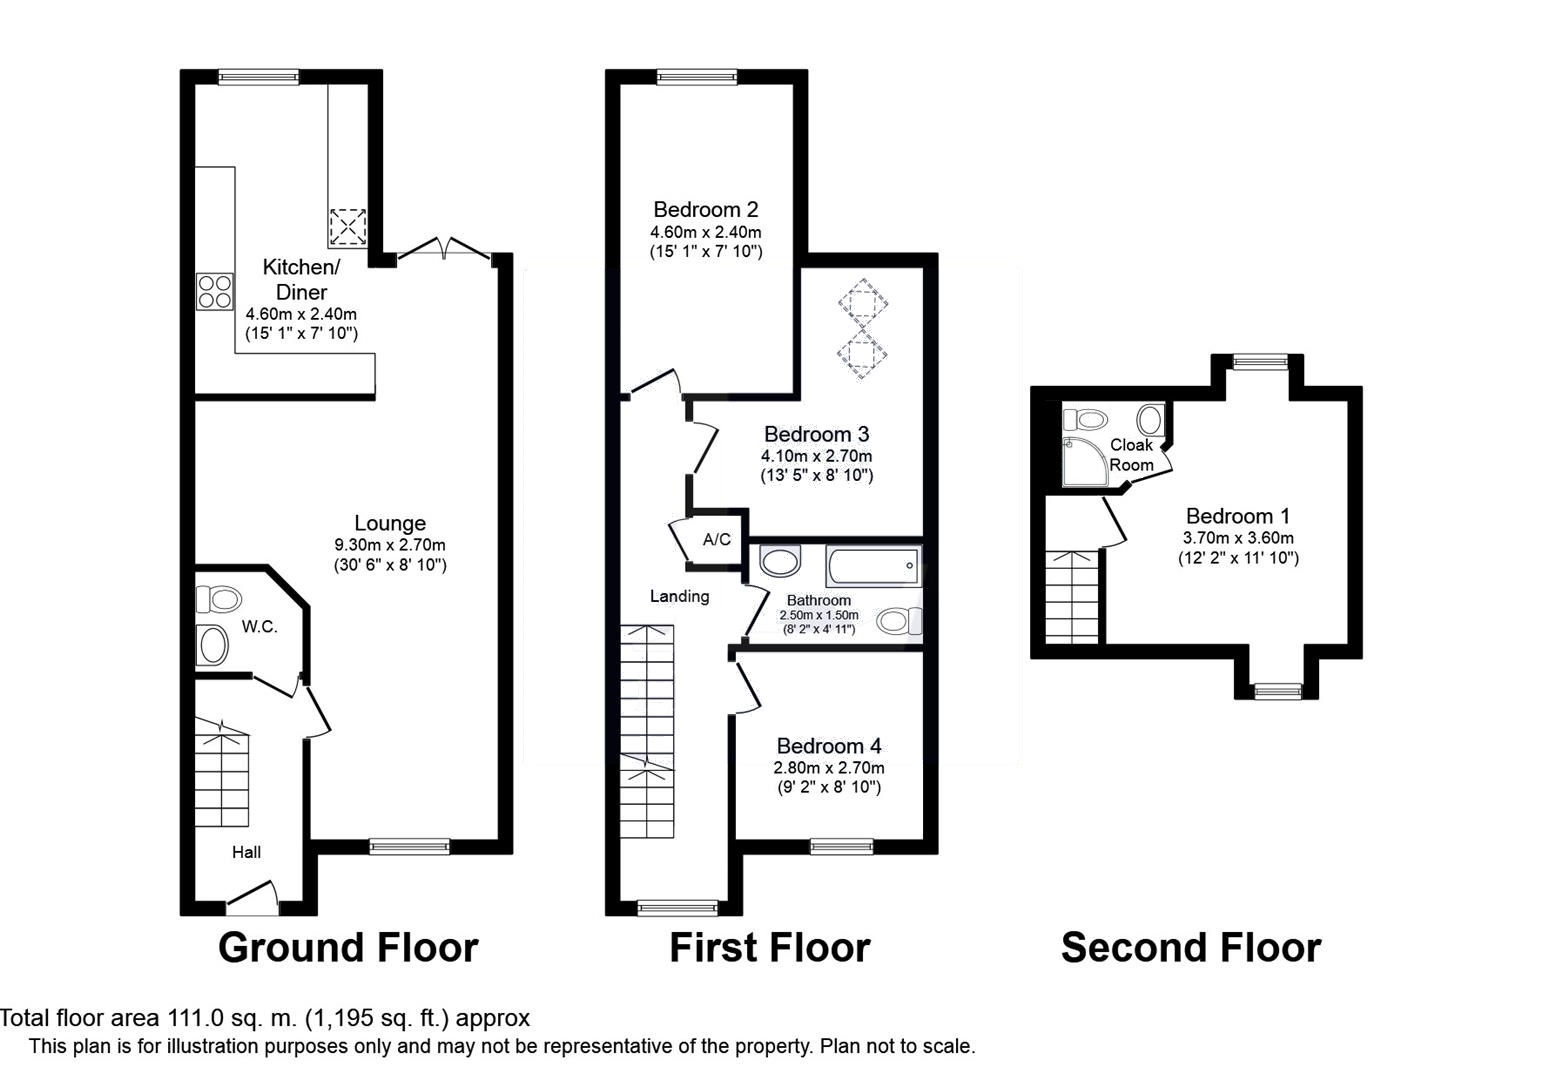 Floor plans at London Road House